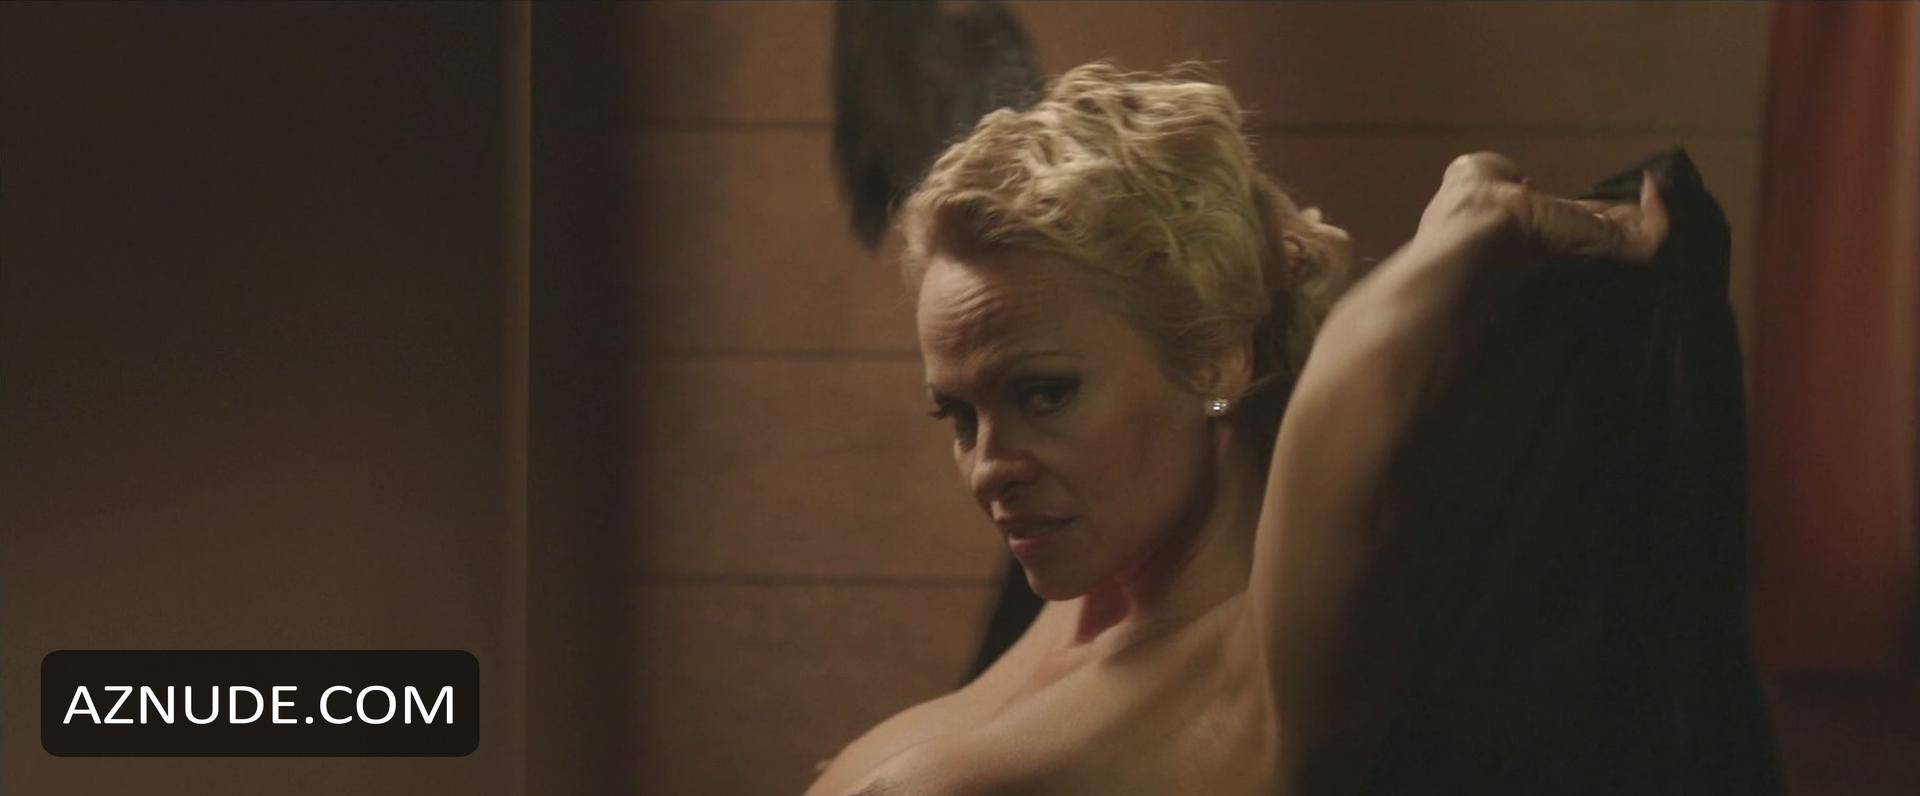 pamela anderson movies naked